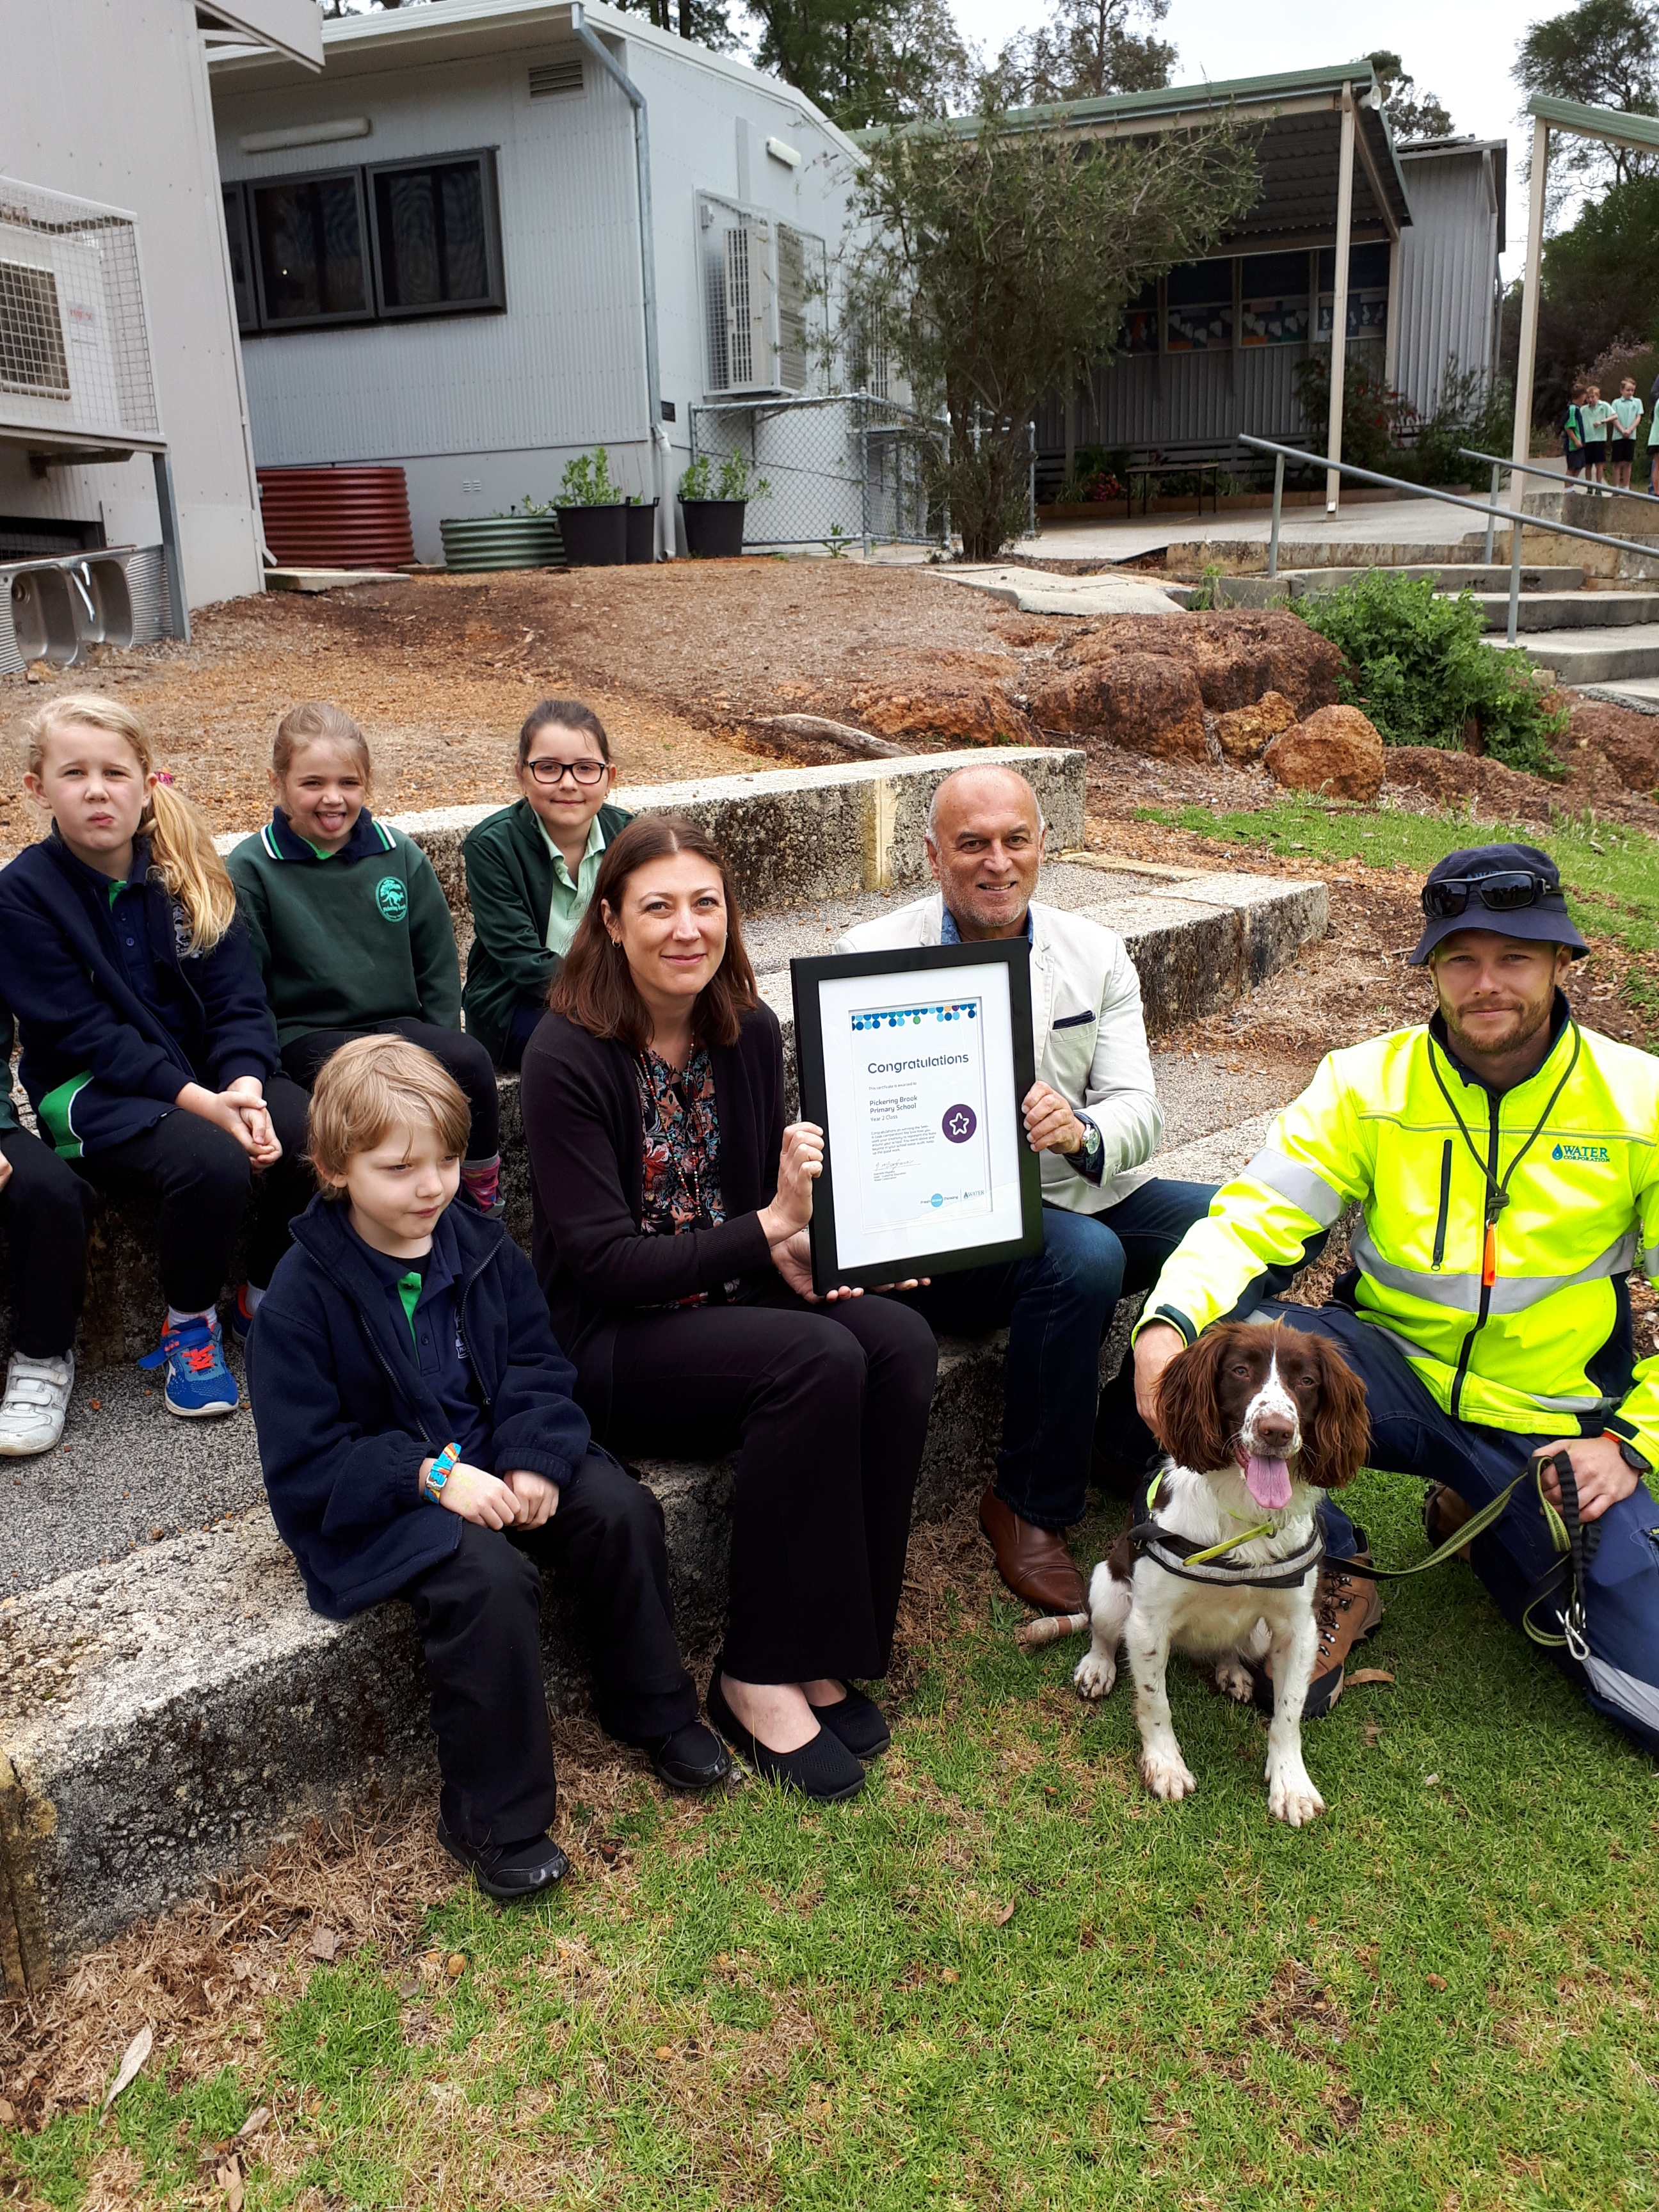 Pickering Brook Primary School received a visit from Kep the leak detection dog